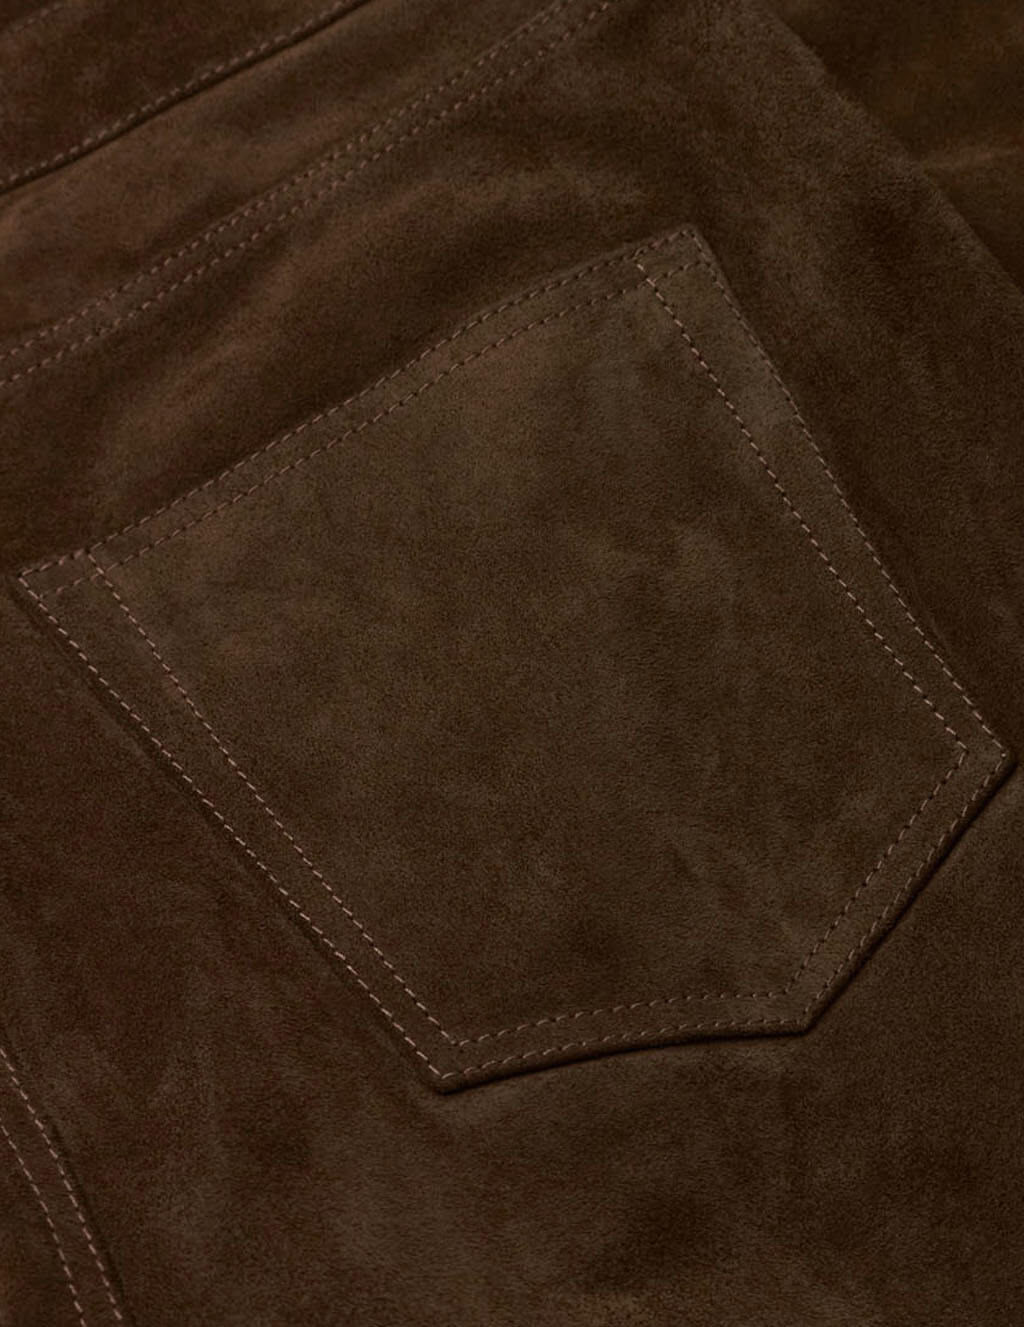 Men's Brown Suede Saint Laurent Straight-Cut Trousers 605147YC2AY2104